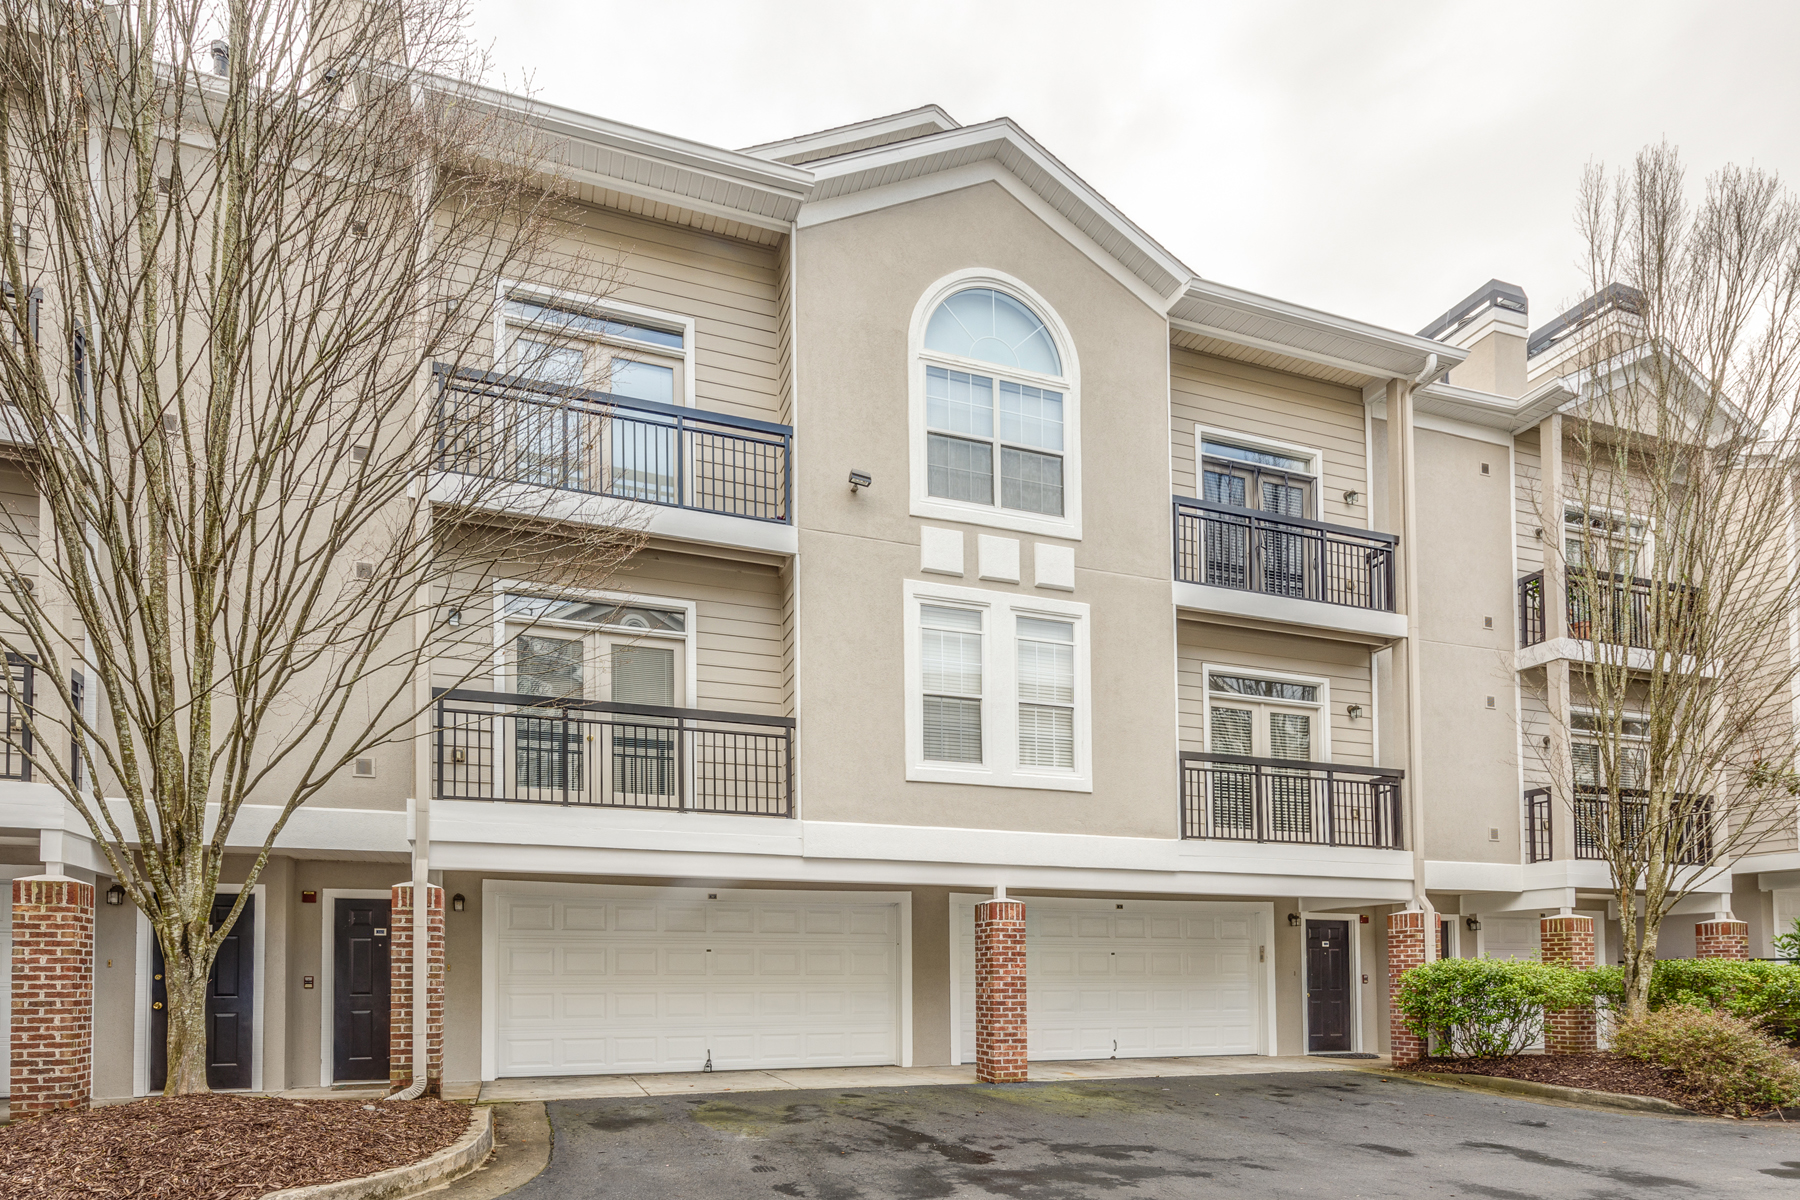 Condominio por un Alquiler en Beautiful Multi-level Townhome Conveniently Located 4248 River Green Drive NW Unit 310, Atlanta, Georgia, 30327 Estados Unidos